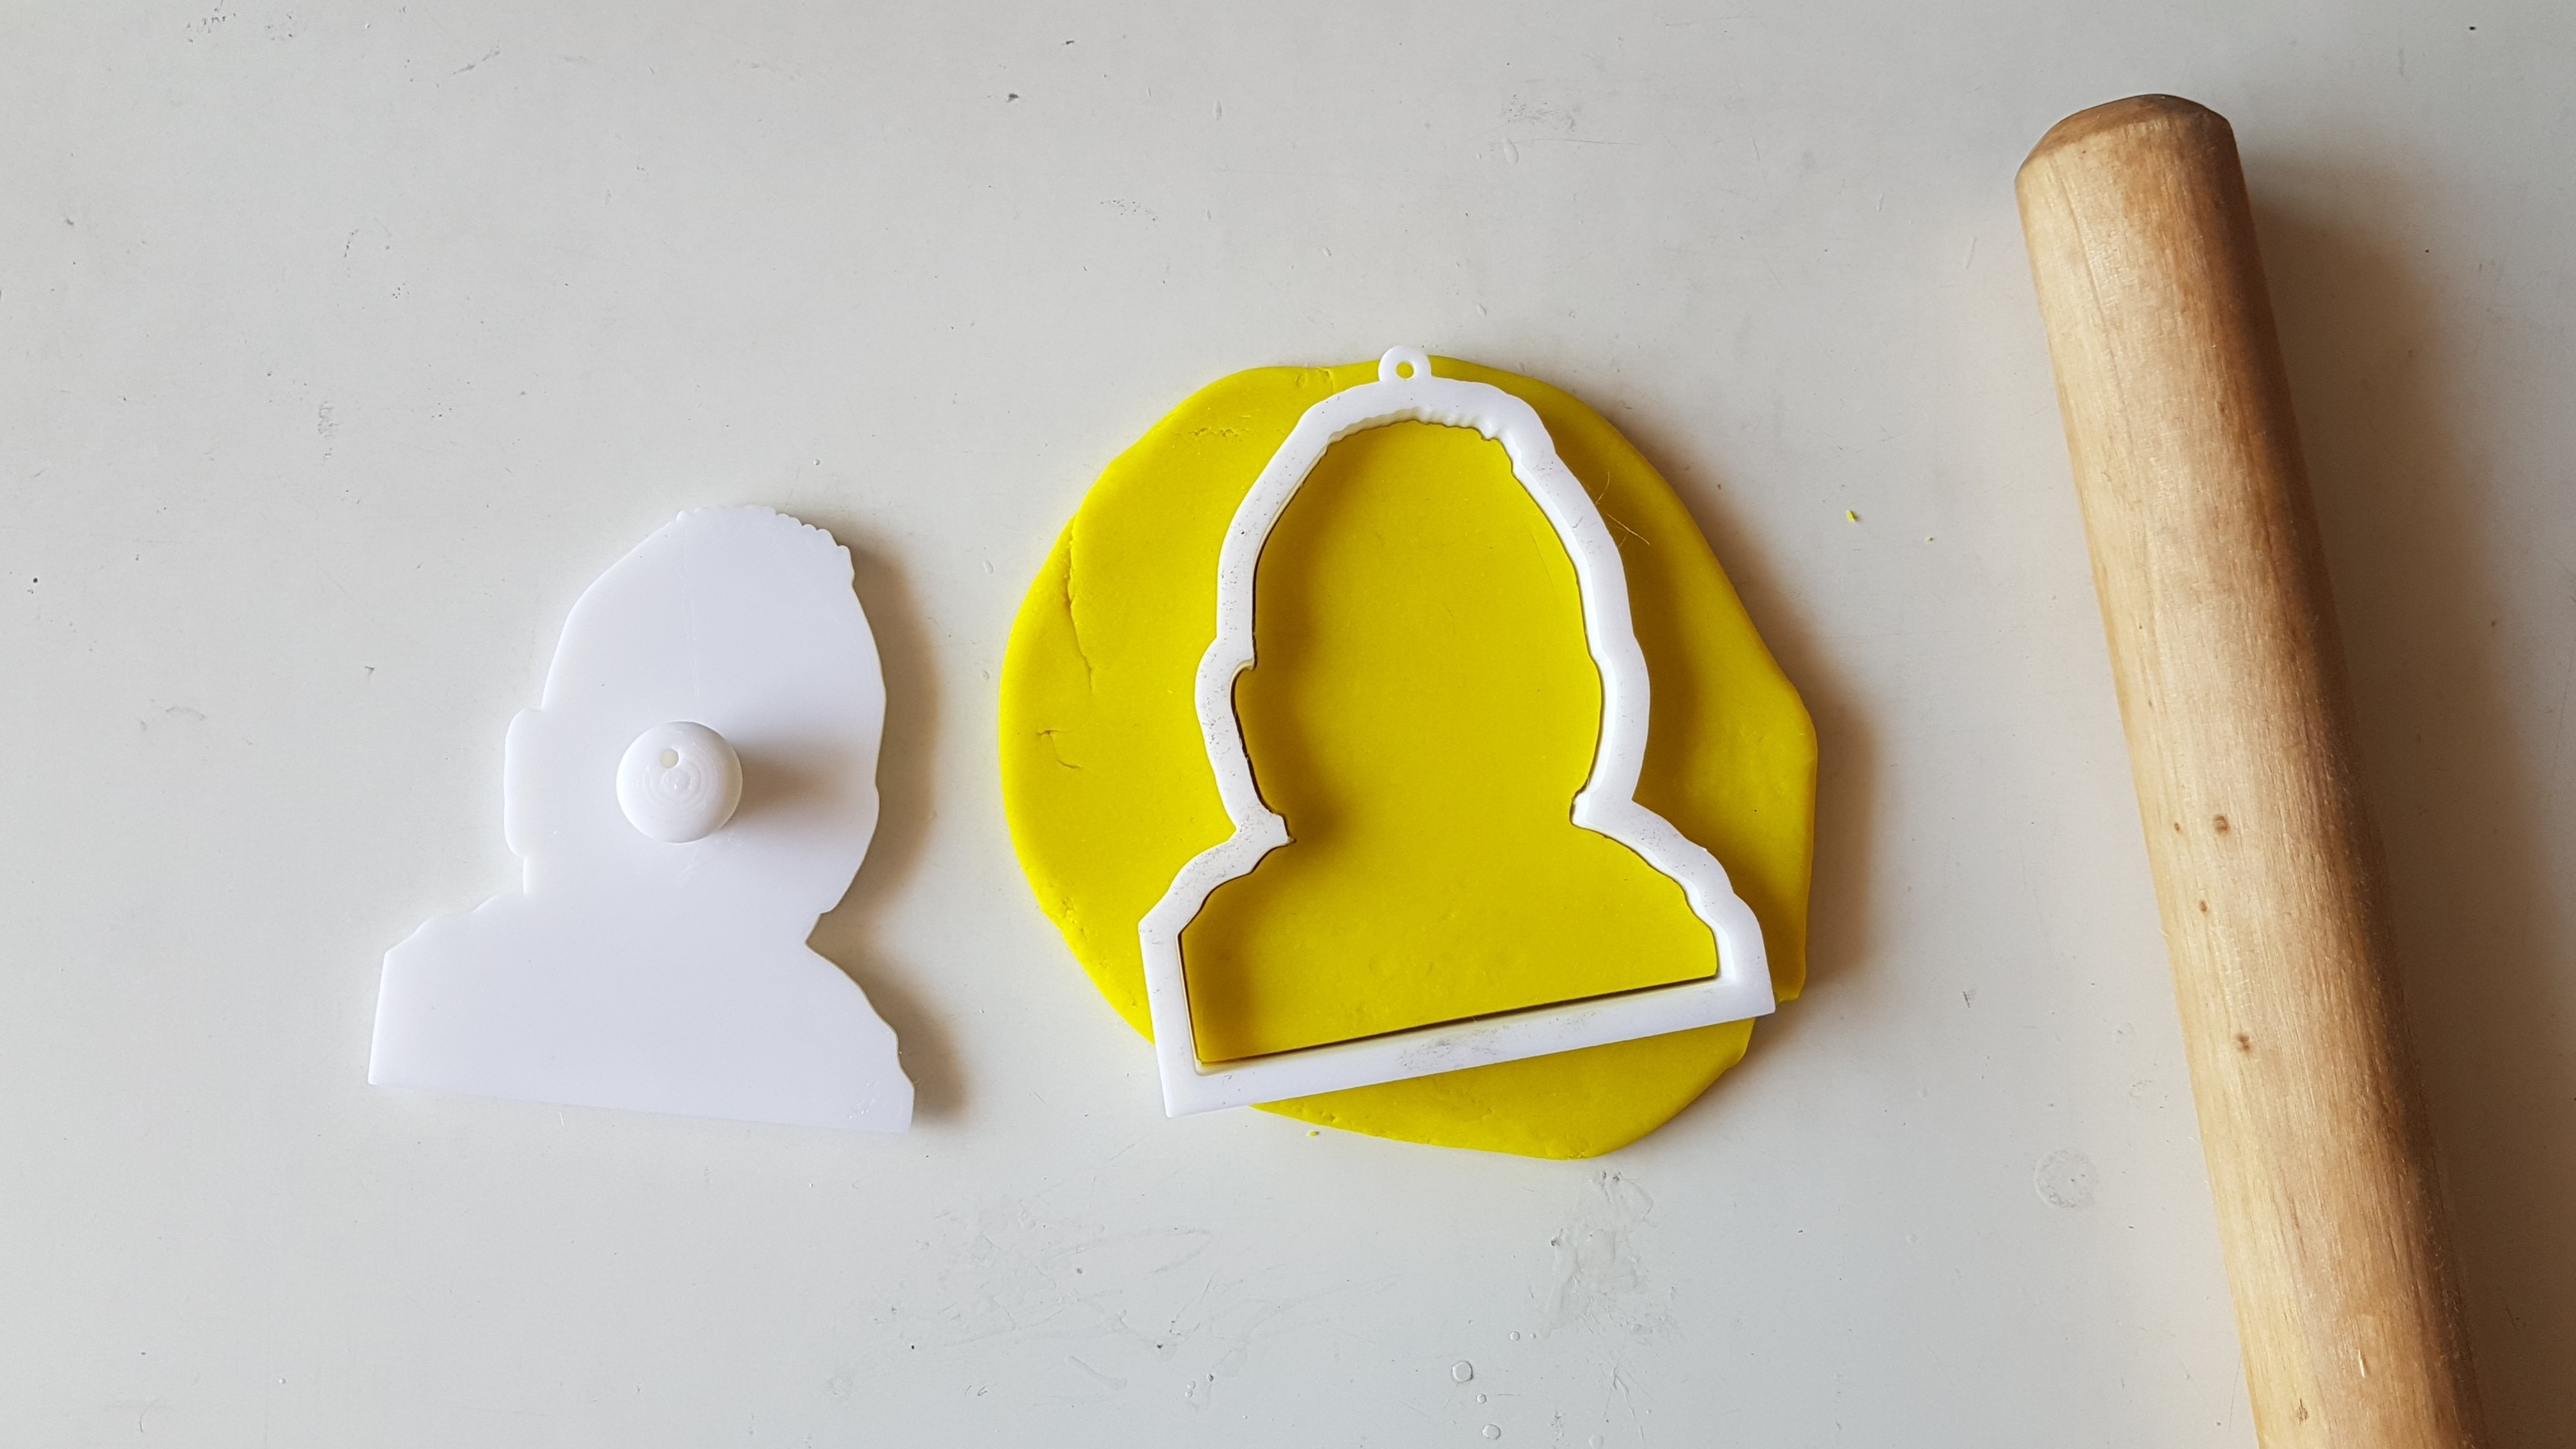 20180828_132520.jpg Download STL file Customize your cookie cutter • Object to 3D print, 3dfactory